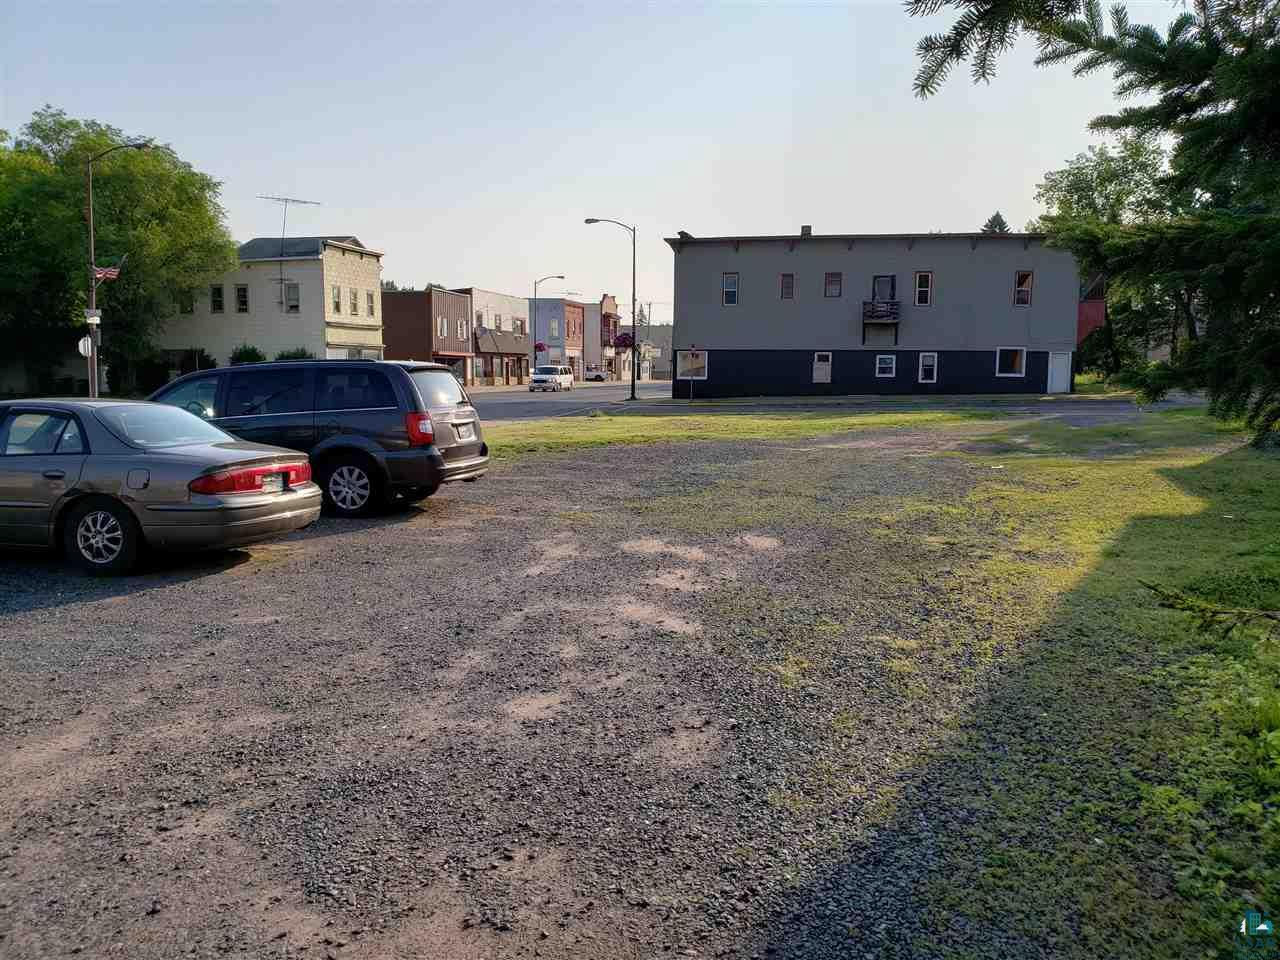 Located on the corner of Main Street & Willis Avenue in Ashland's City Center, this vacant lot offers a large commercial corner. Just blocks away from Lake Superior with views of the Chequamegon Bay, you also have instant exposure to the traffic and foot traffic on Main Street.  Great place for a Food Truck, Coffee Shop or to use as additional parking for your current business. This property is Zoned City Center.